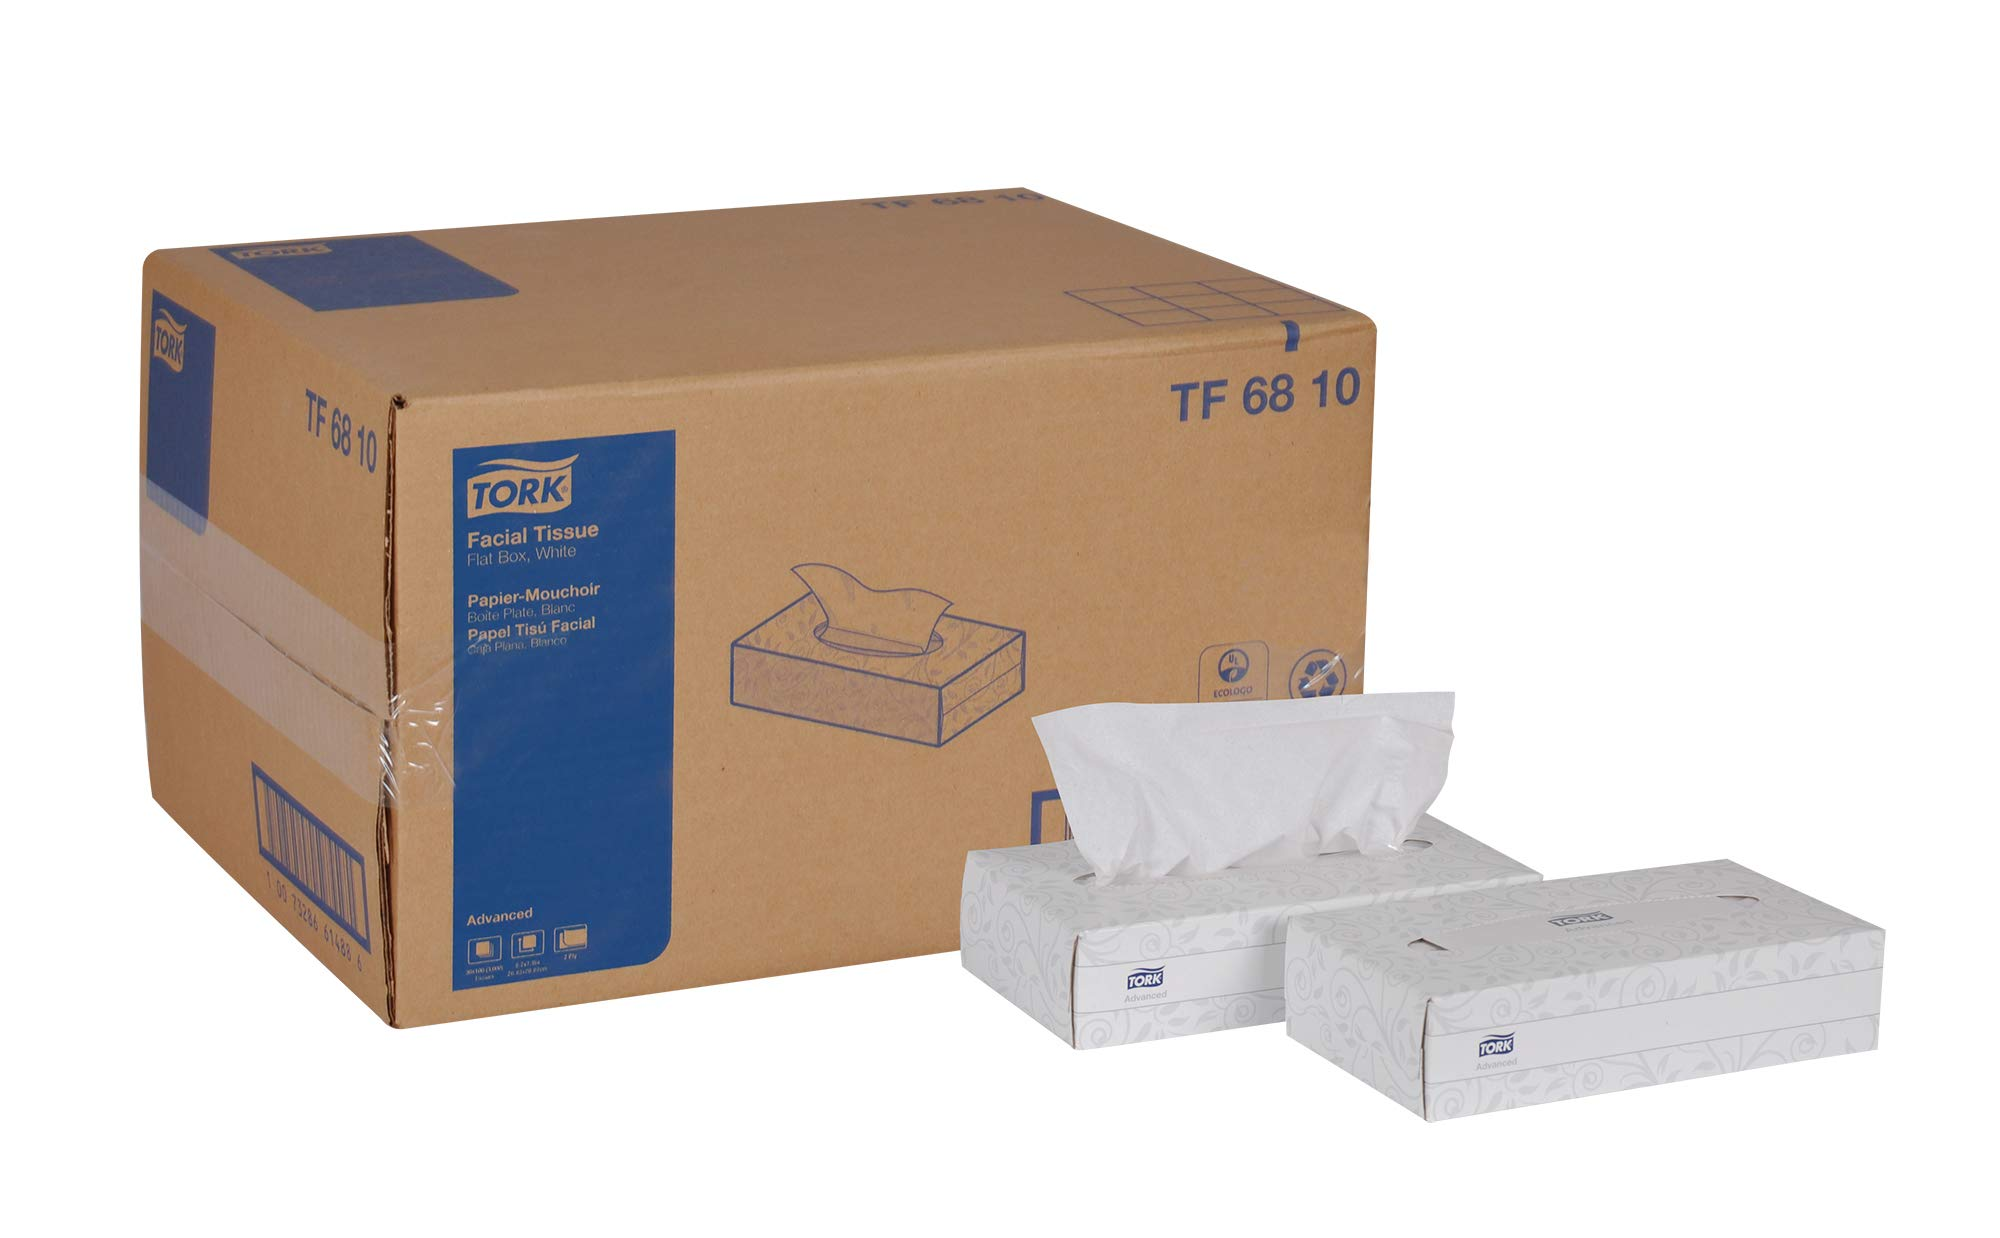 Tork Advanced TF6810 Facial Tissue, Flat Box, 2-Ply, 8.2'' Width x 7.9'' Length, White (Case of 30 Boxes, 100 per Box, 3,000 Sheets)